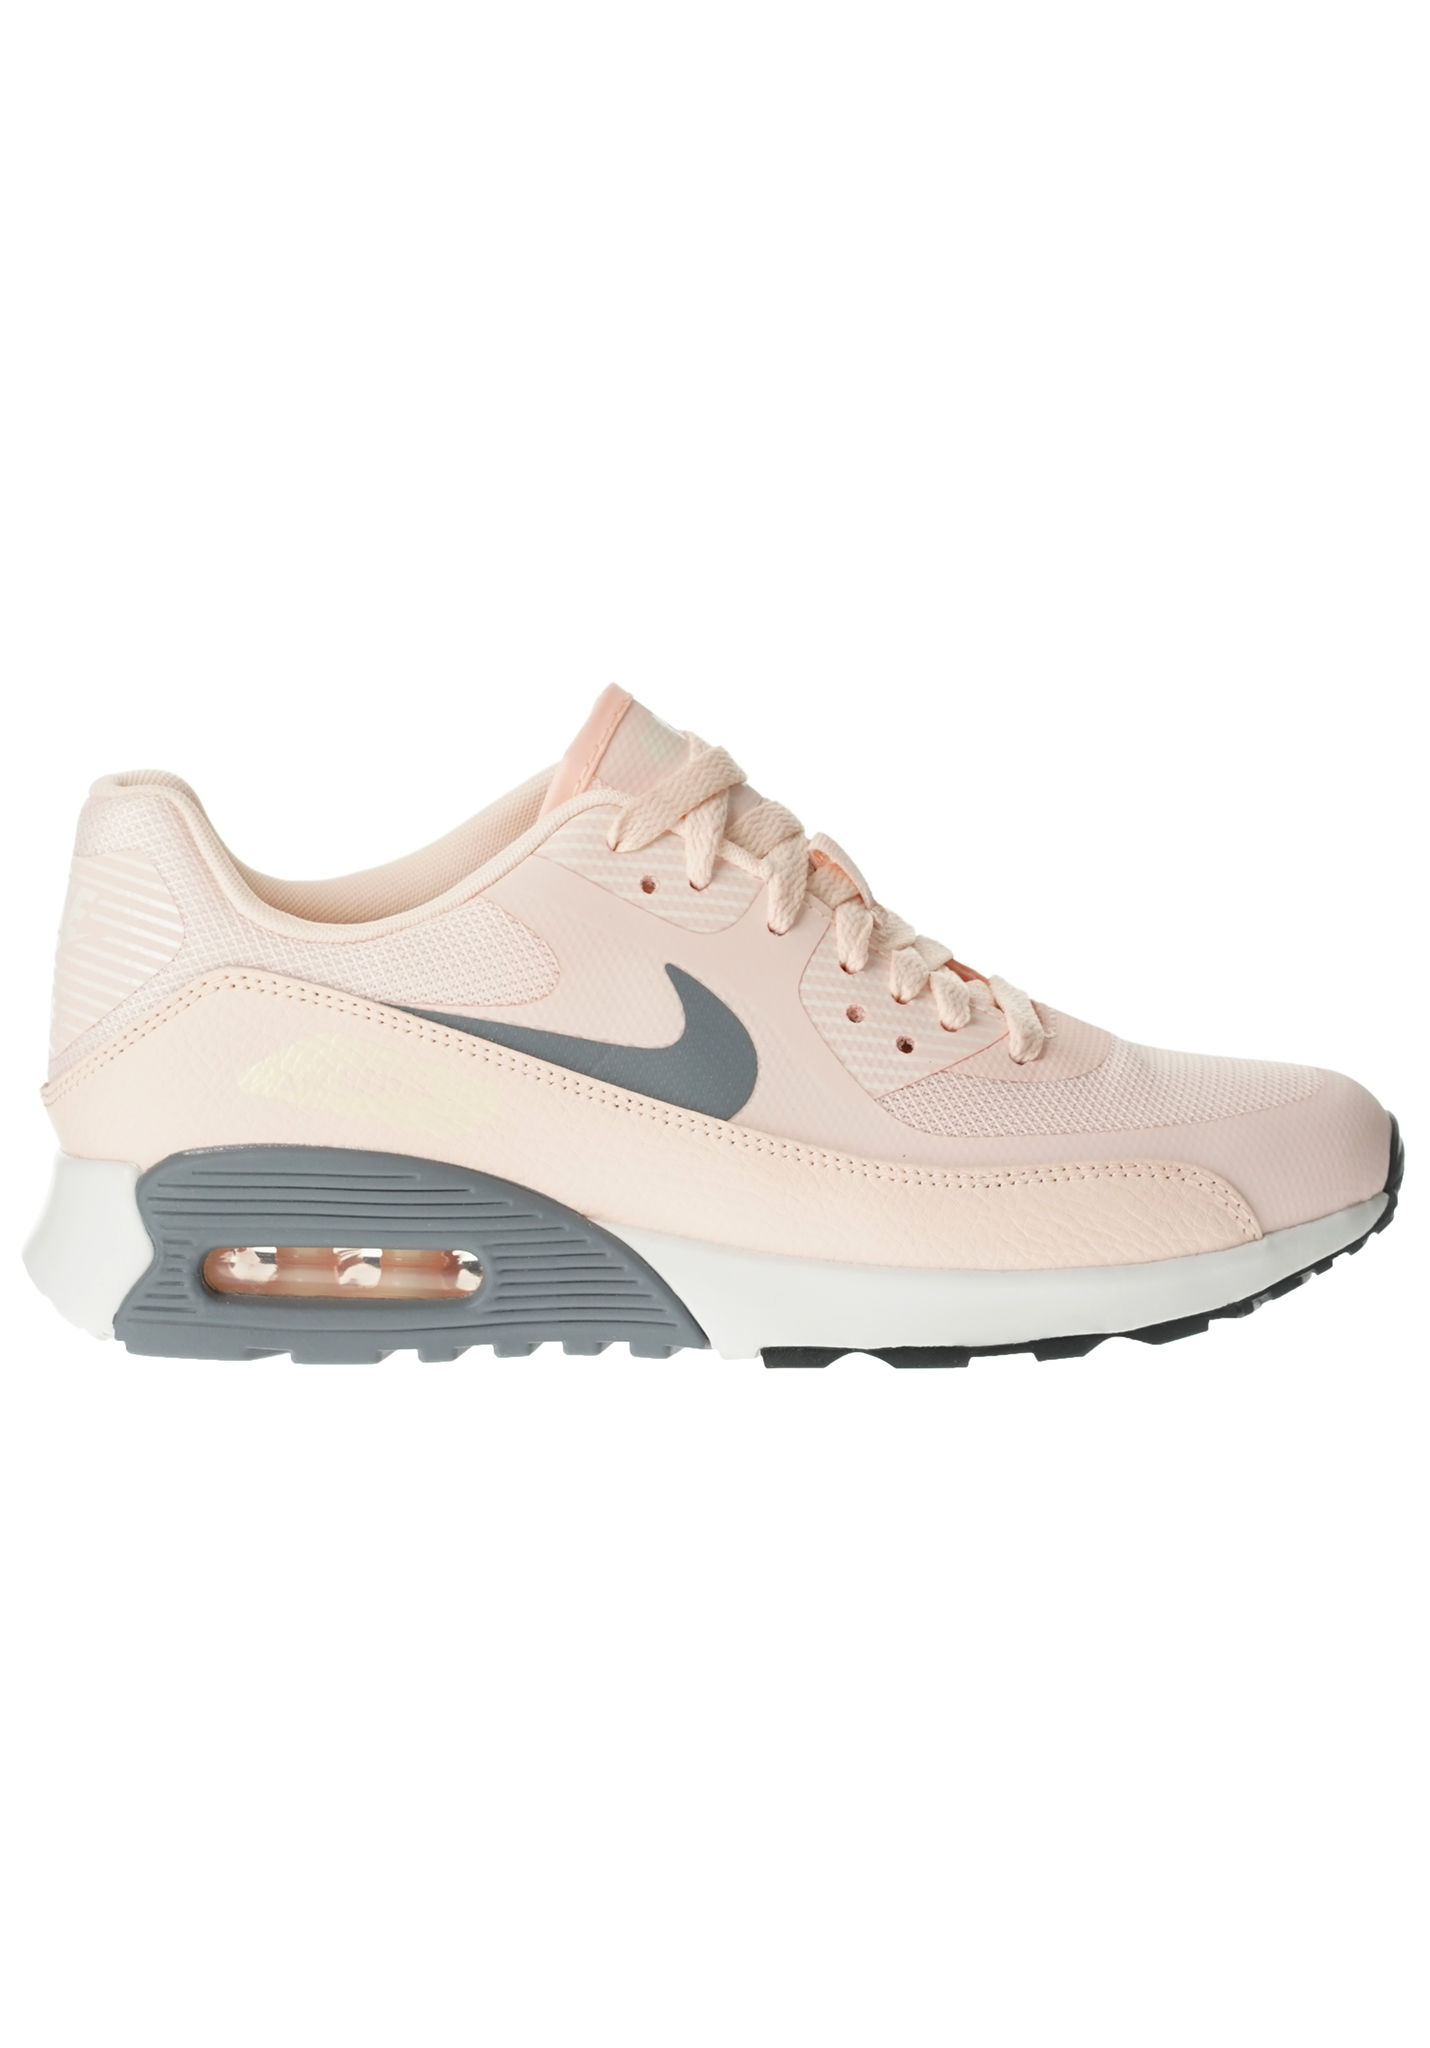 NIKE SPORTSWEAR Air Max 90 Ultra 2.0 - Sneakers for Women - Pink - Planet  Sports 482643861f